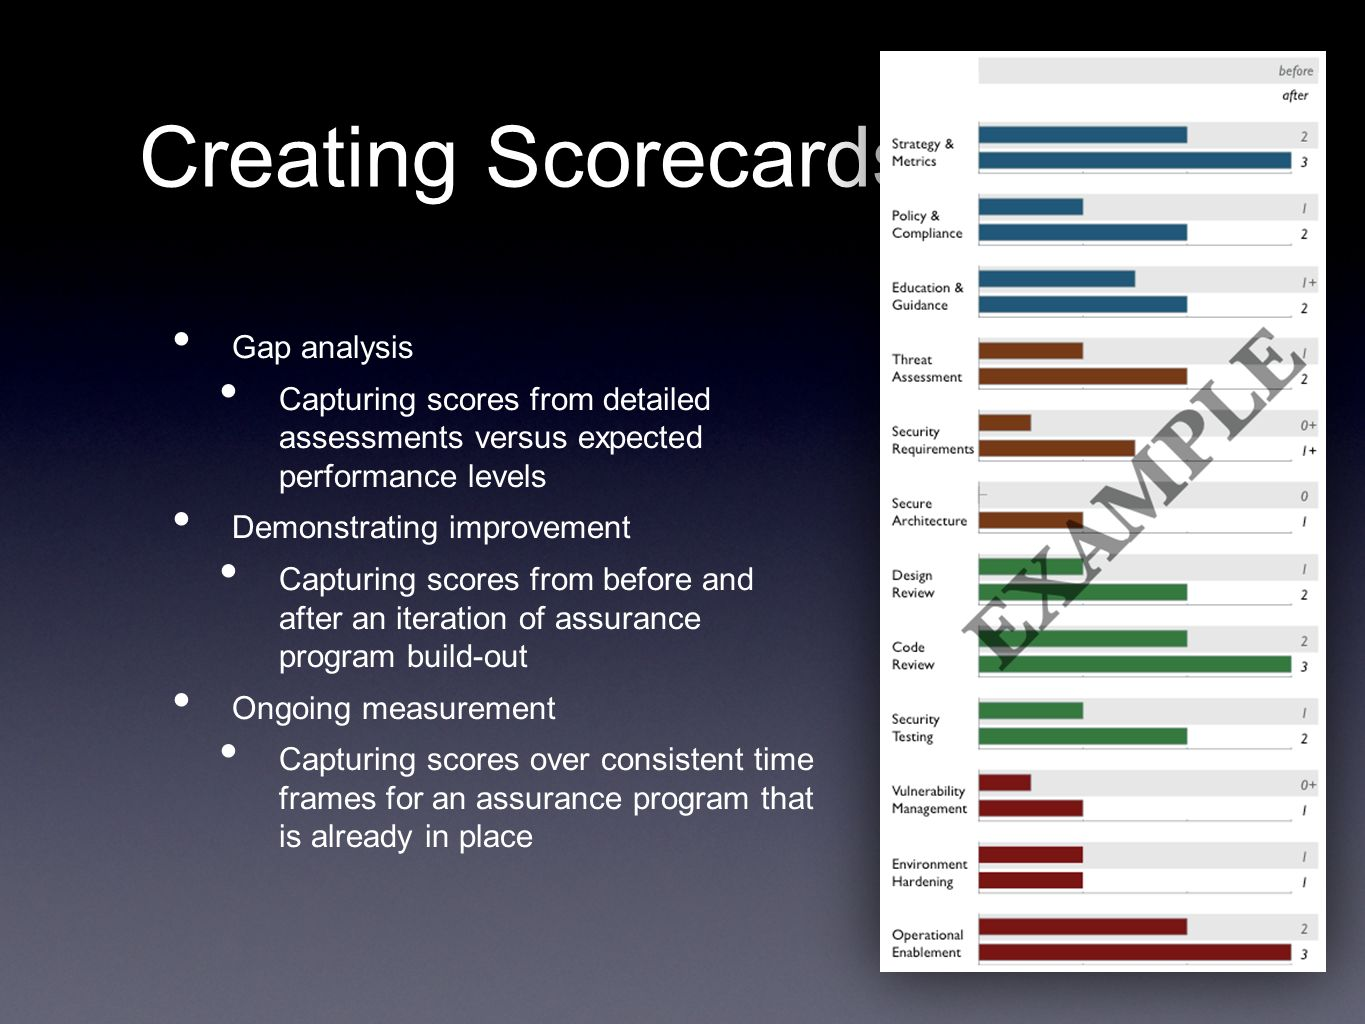 Creating Scorecards Gap analysis